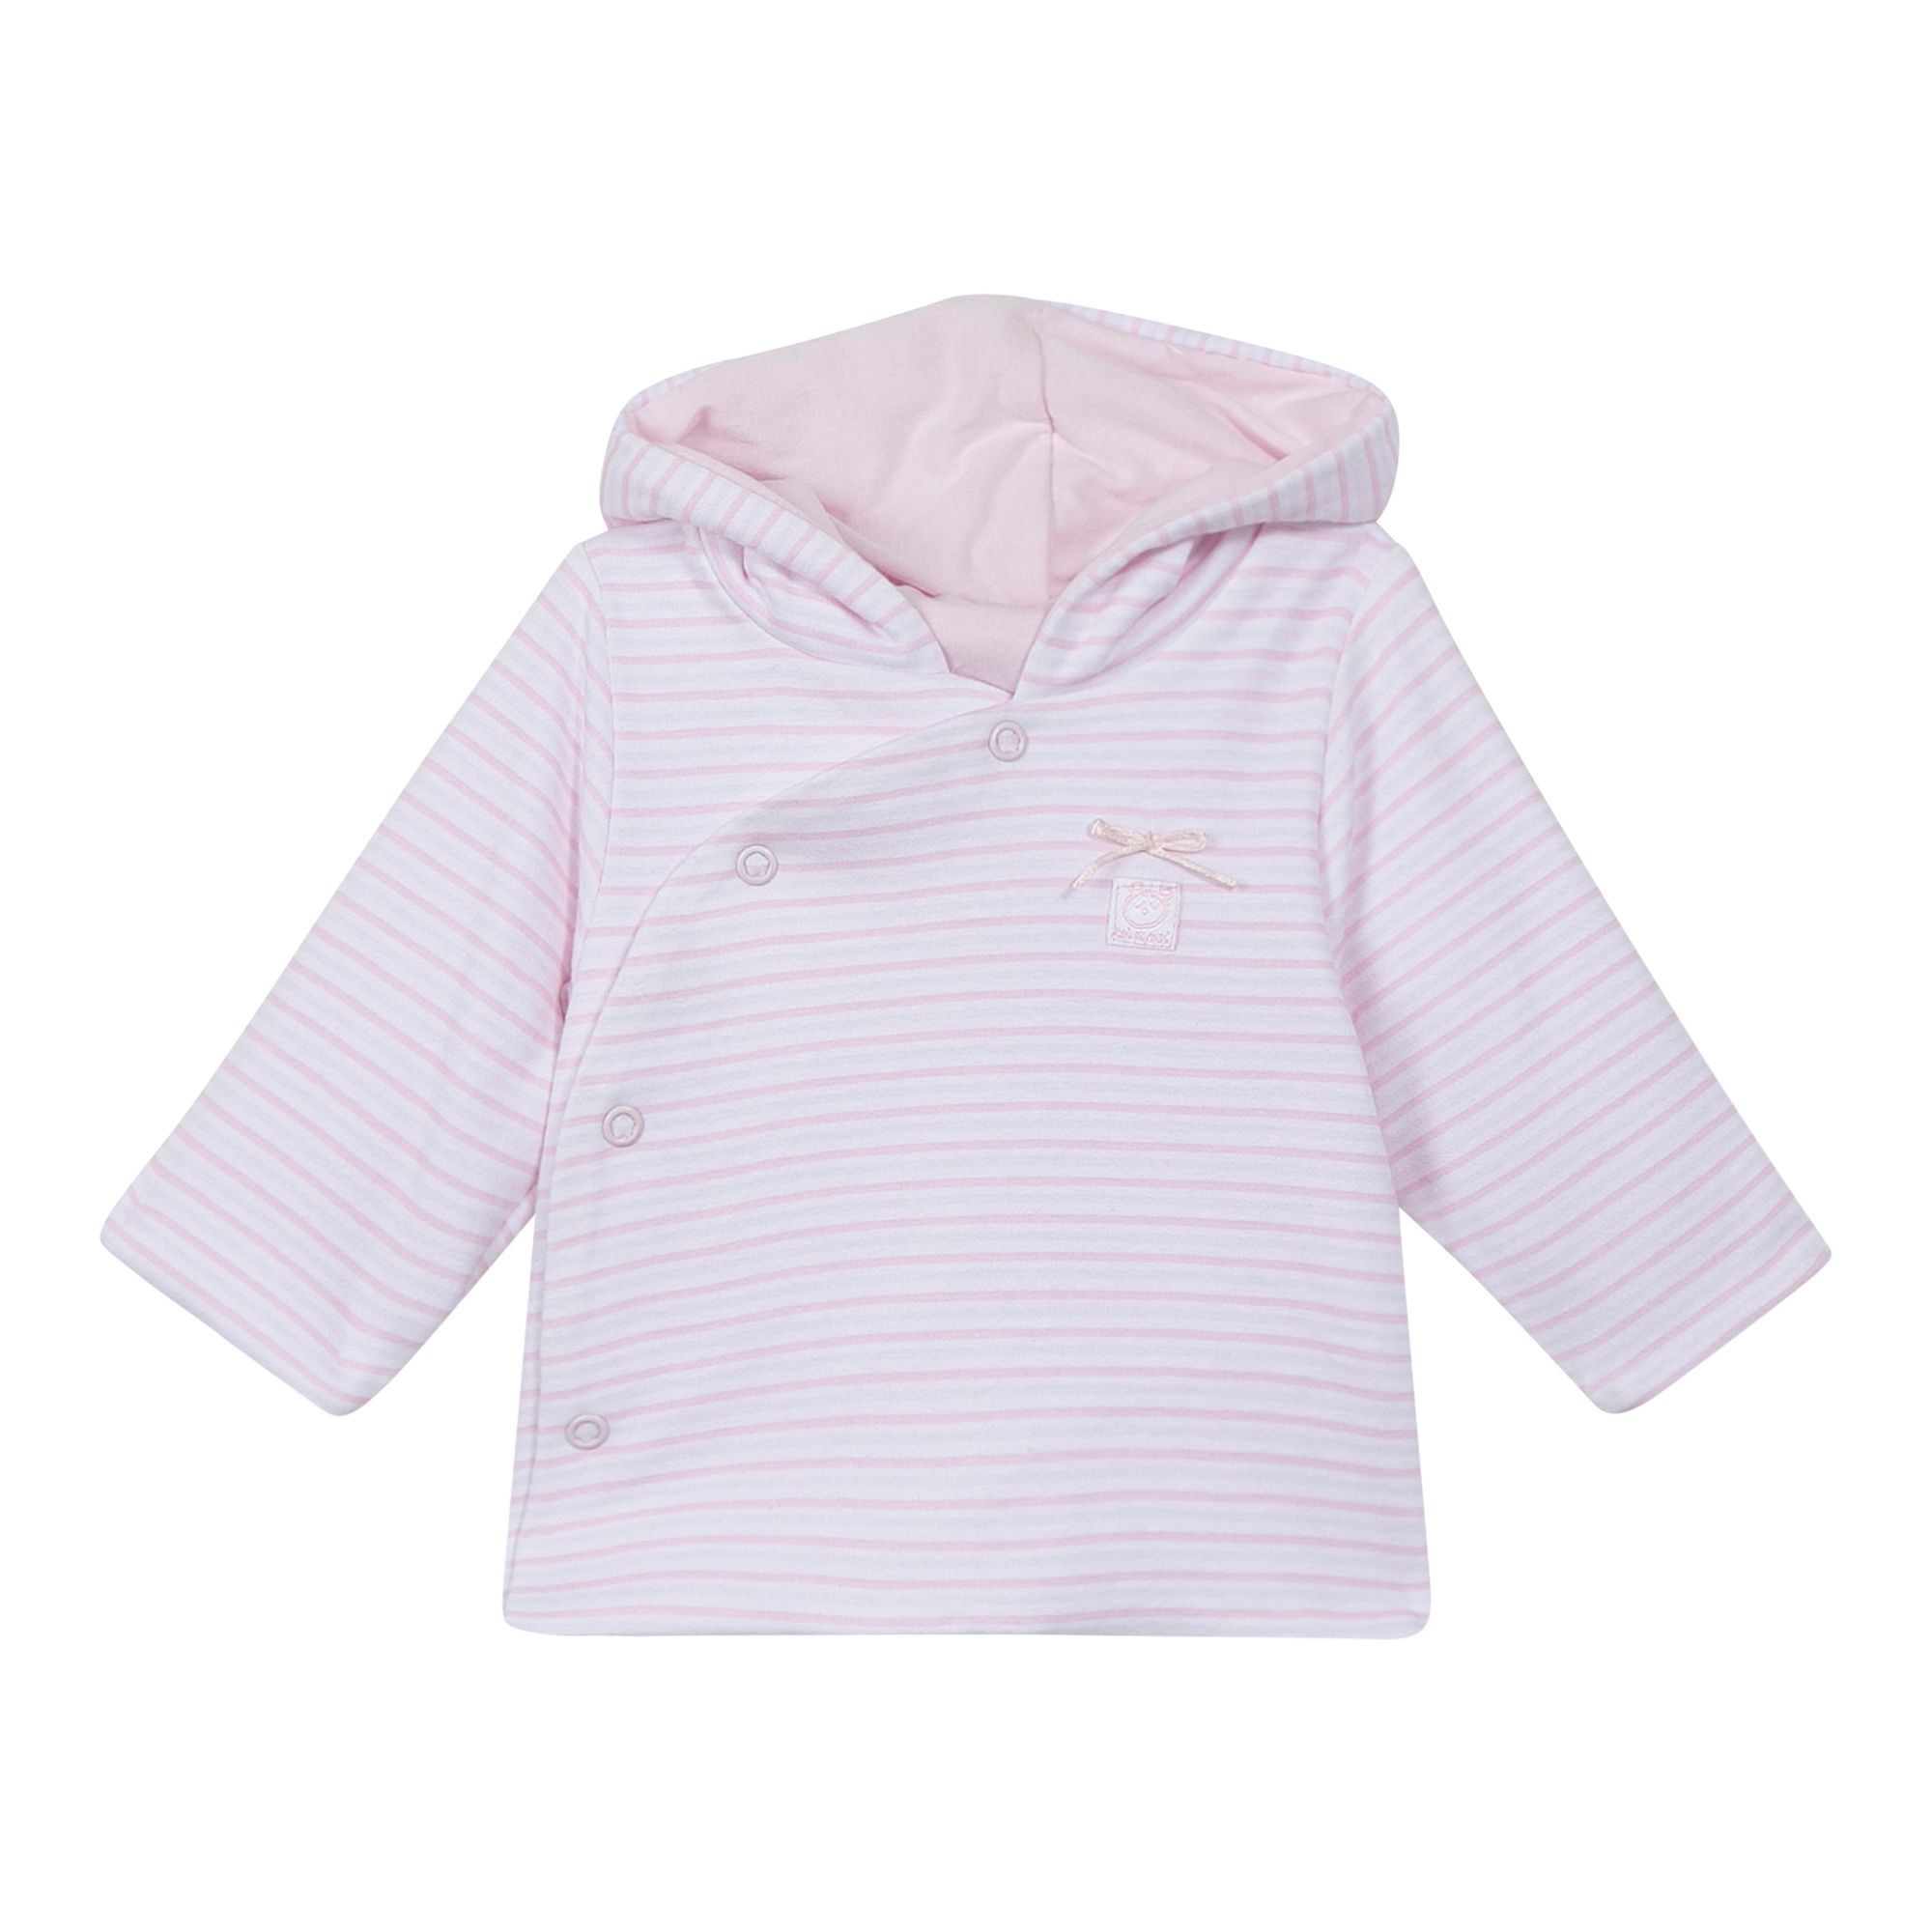 Absorba Absorba Baby Natural Cotton Coat, Pink